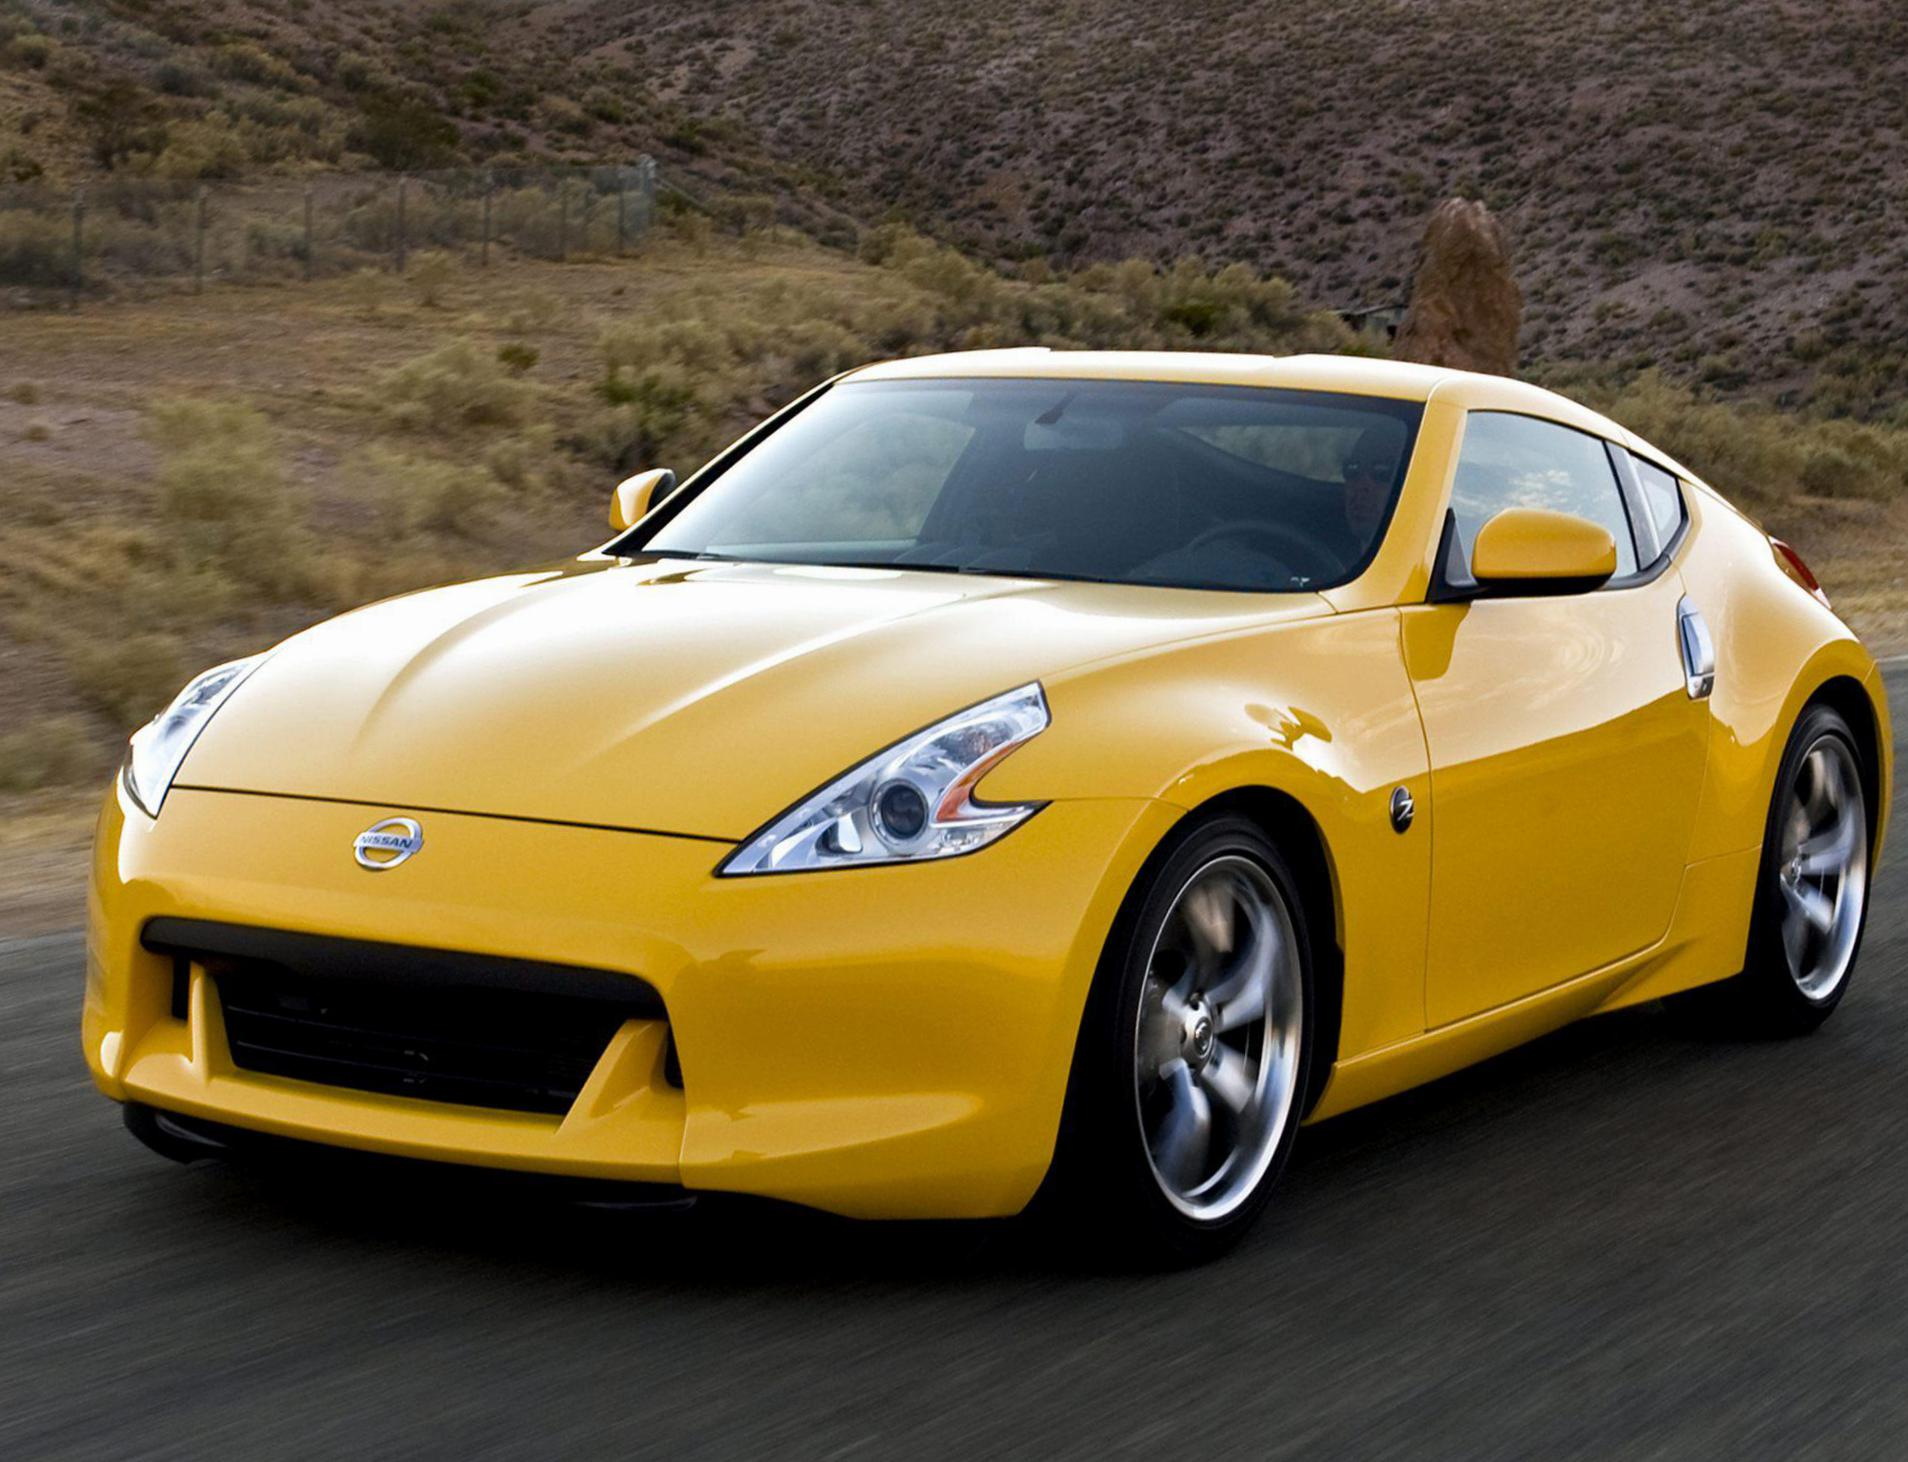 nissan 370z photos and specs. photo: nissan 370z lease and 25